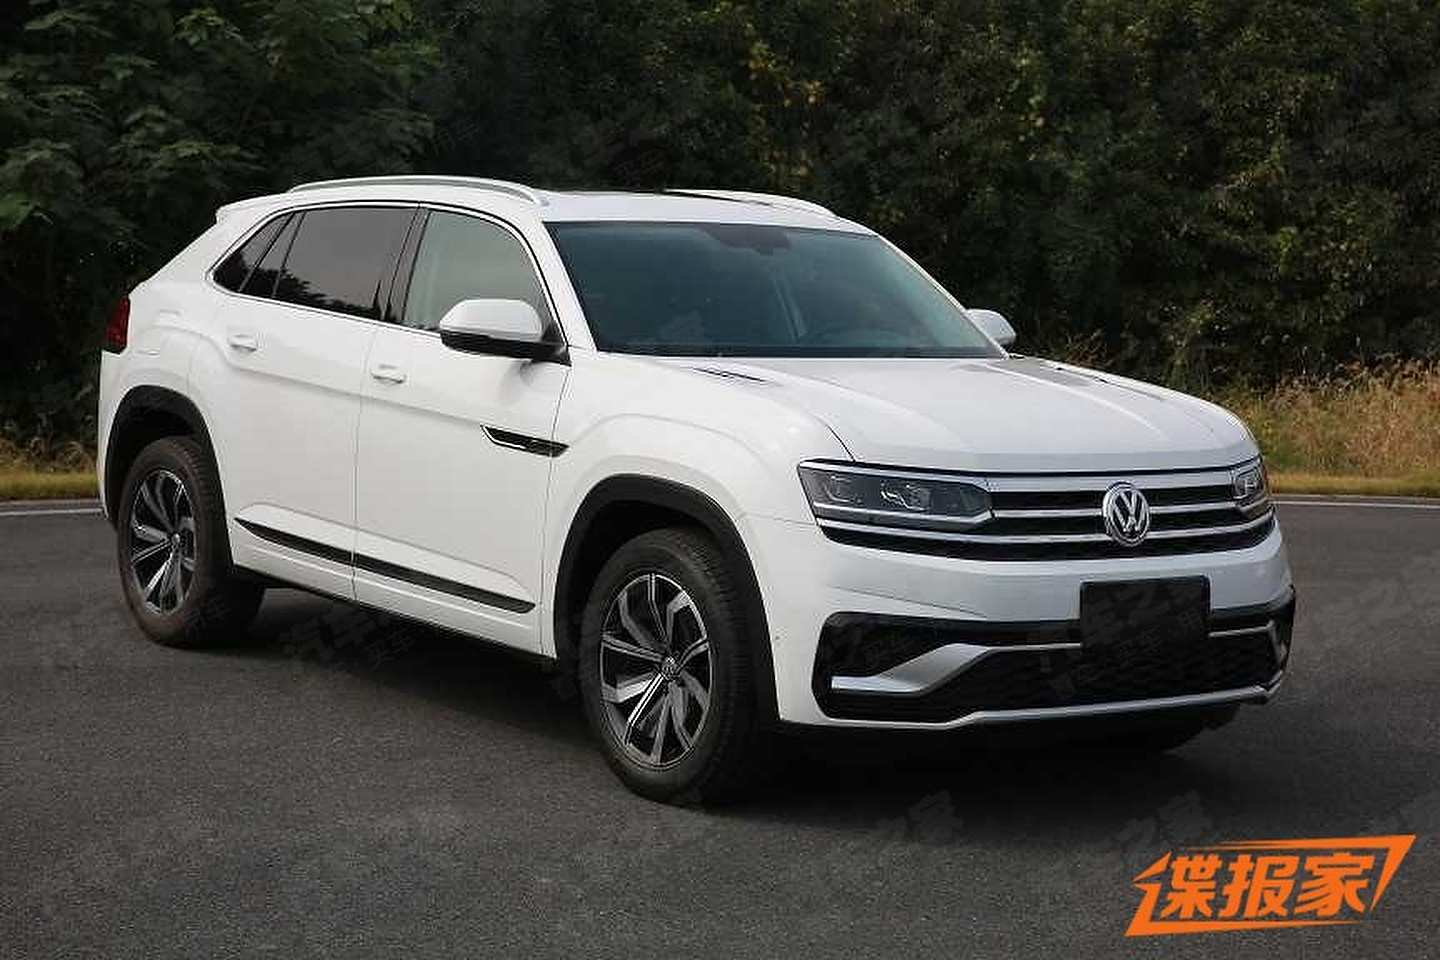 89 Concept of Volkswagen Atlas 2020 Price Specs and Review for Volkswagen Atlas 2020 Price